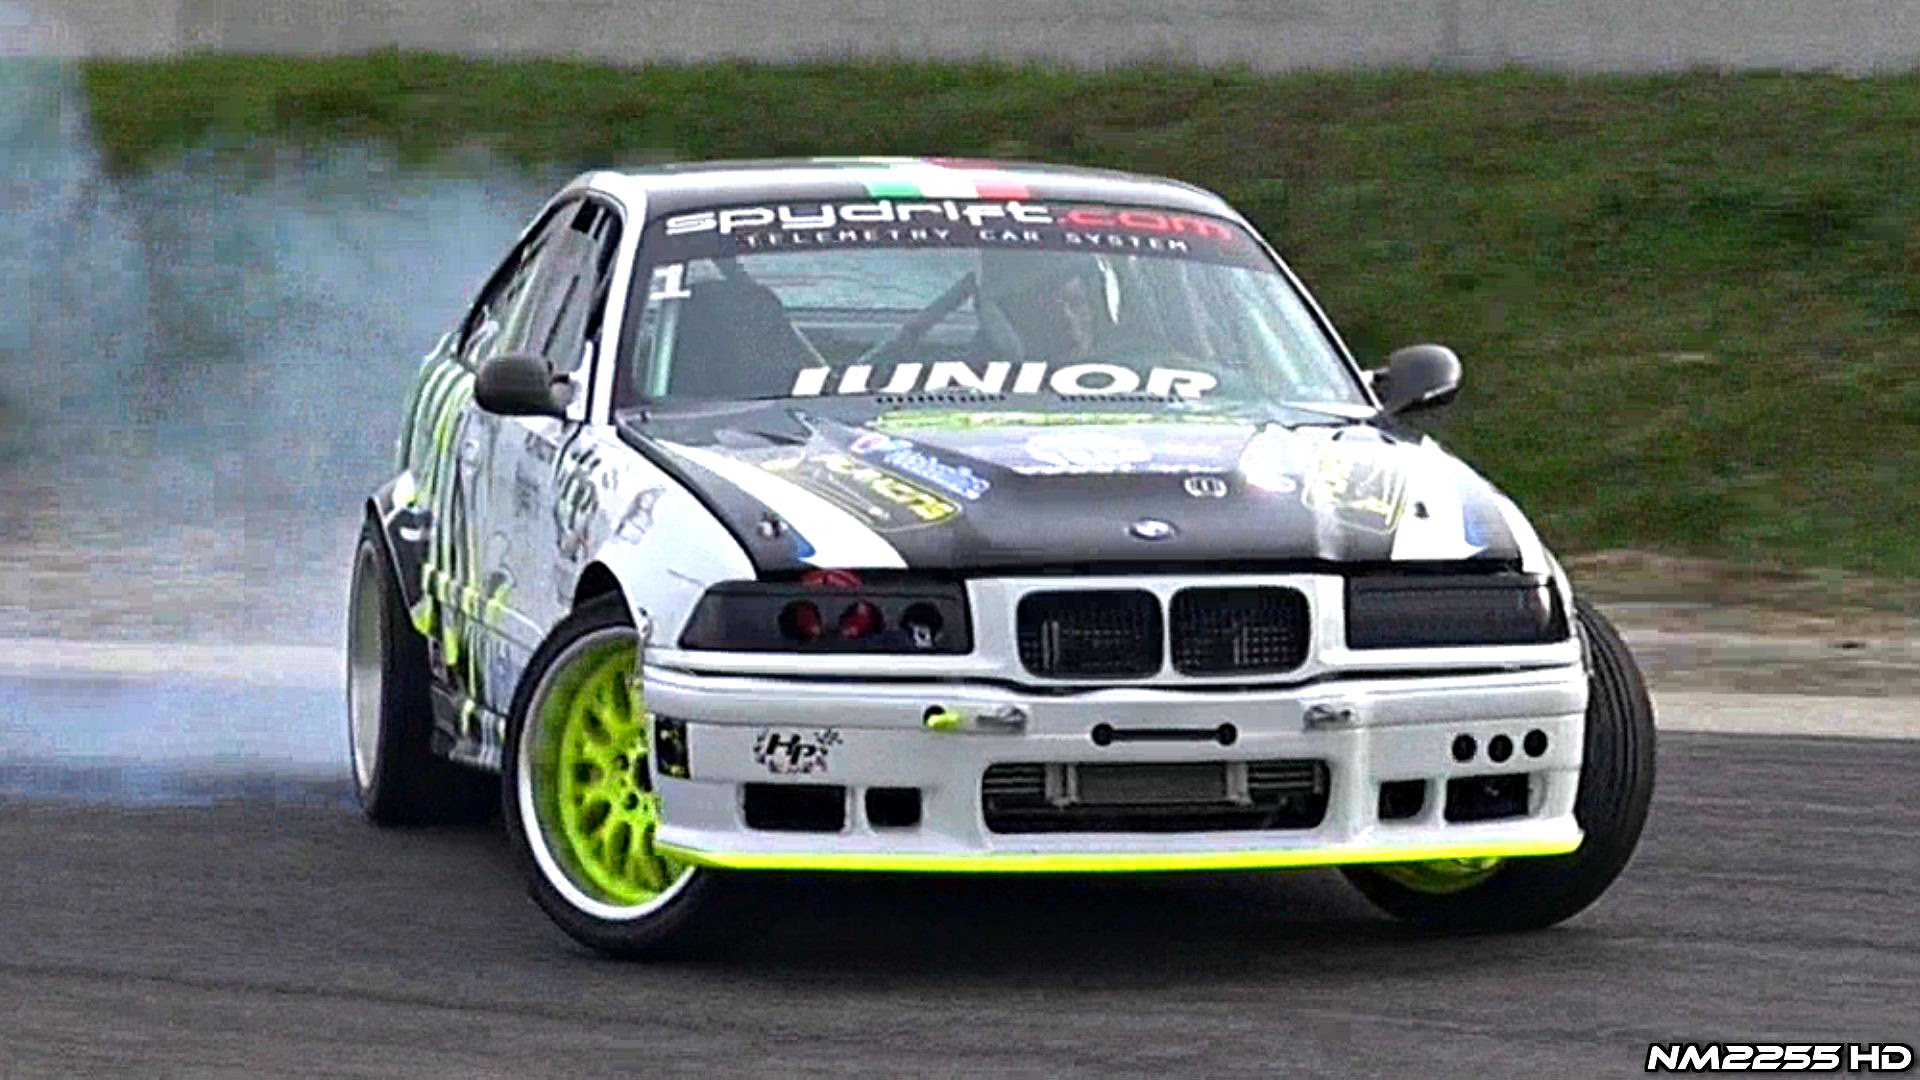 600+hp single turbo bmw m3 e36 knows how to drift